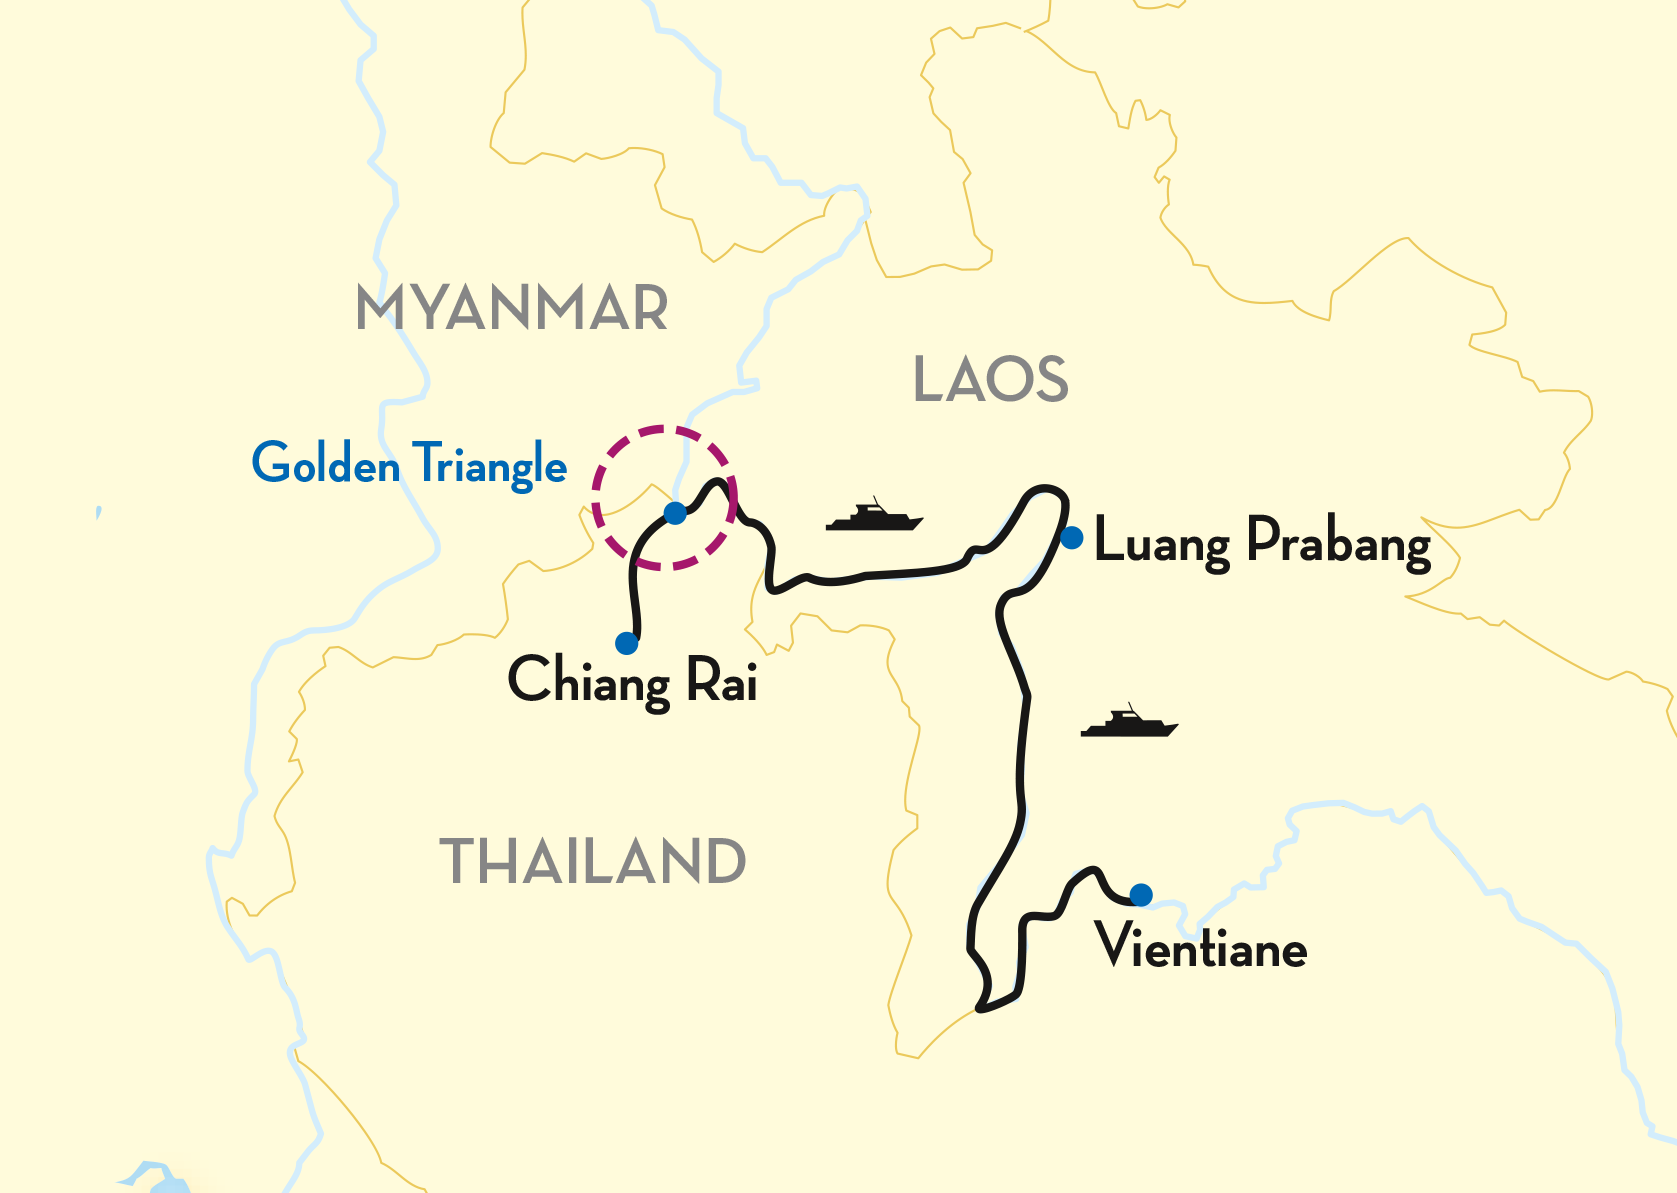 The Golden Triangle Map